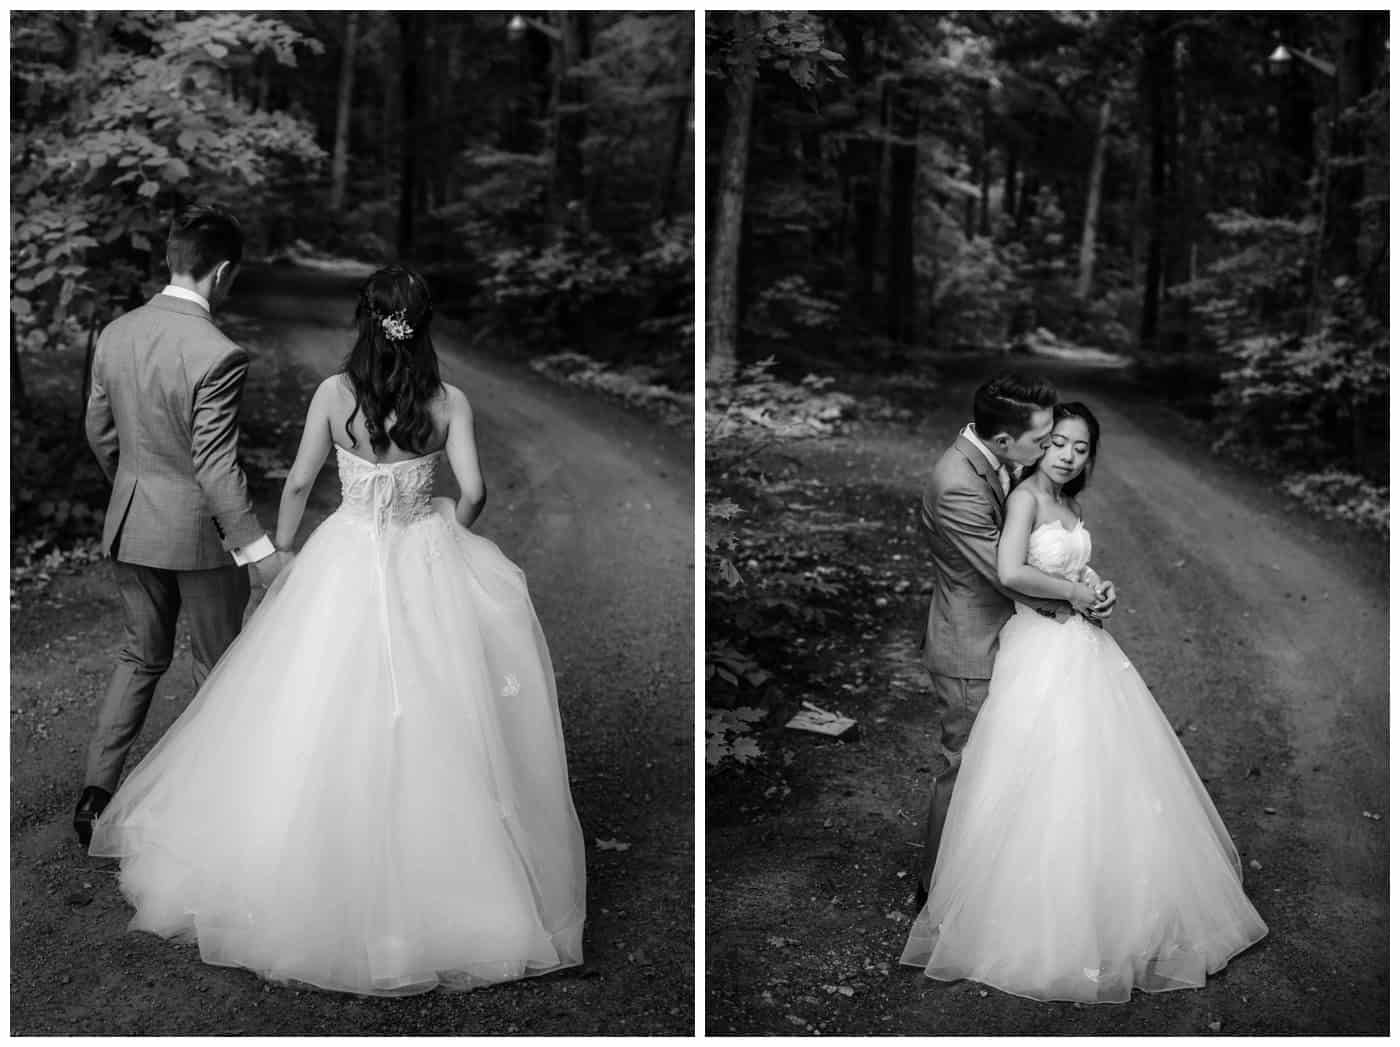 Cabane à sucre Constantin wedding photographer